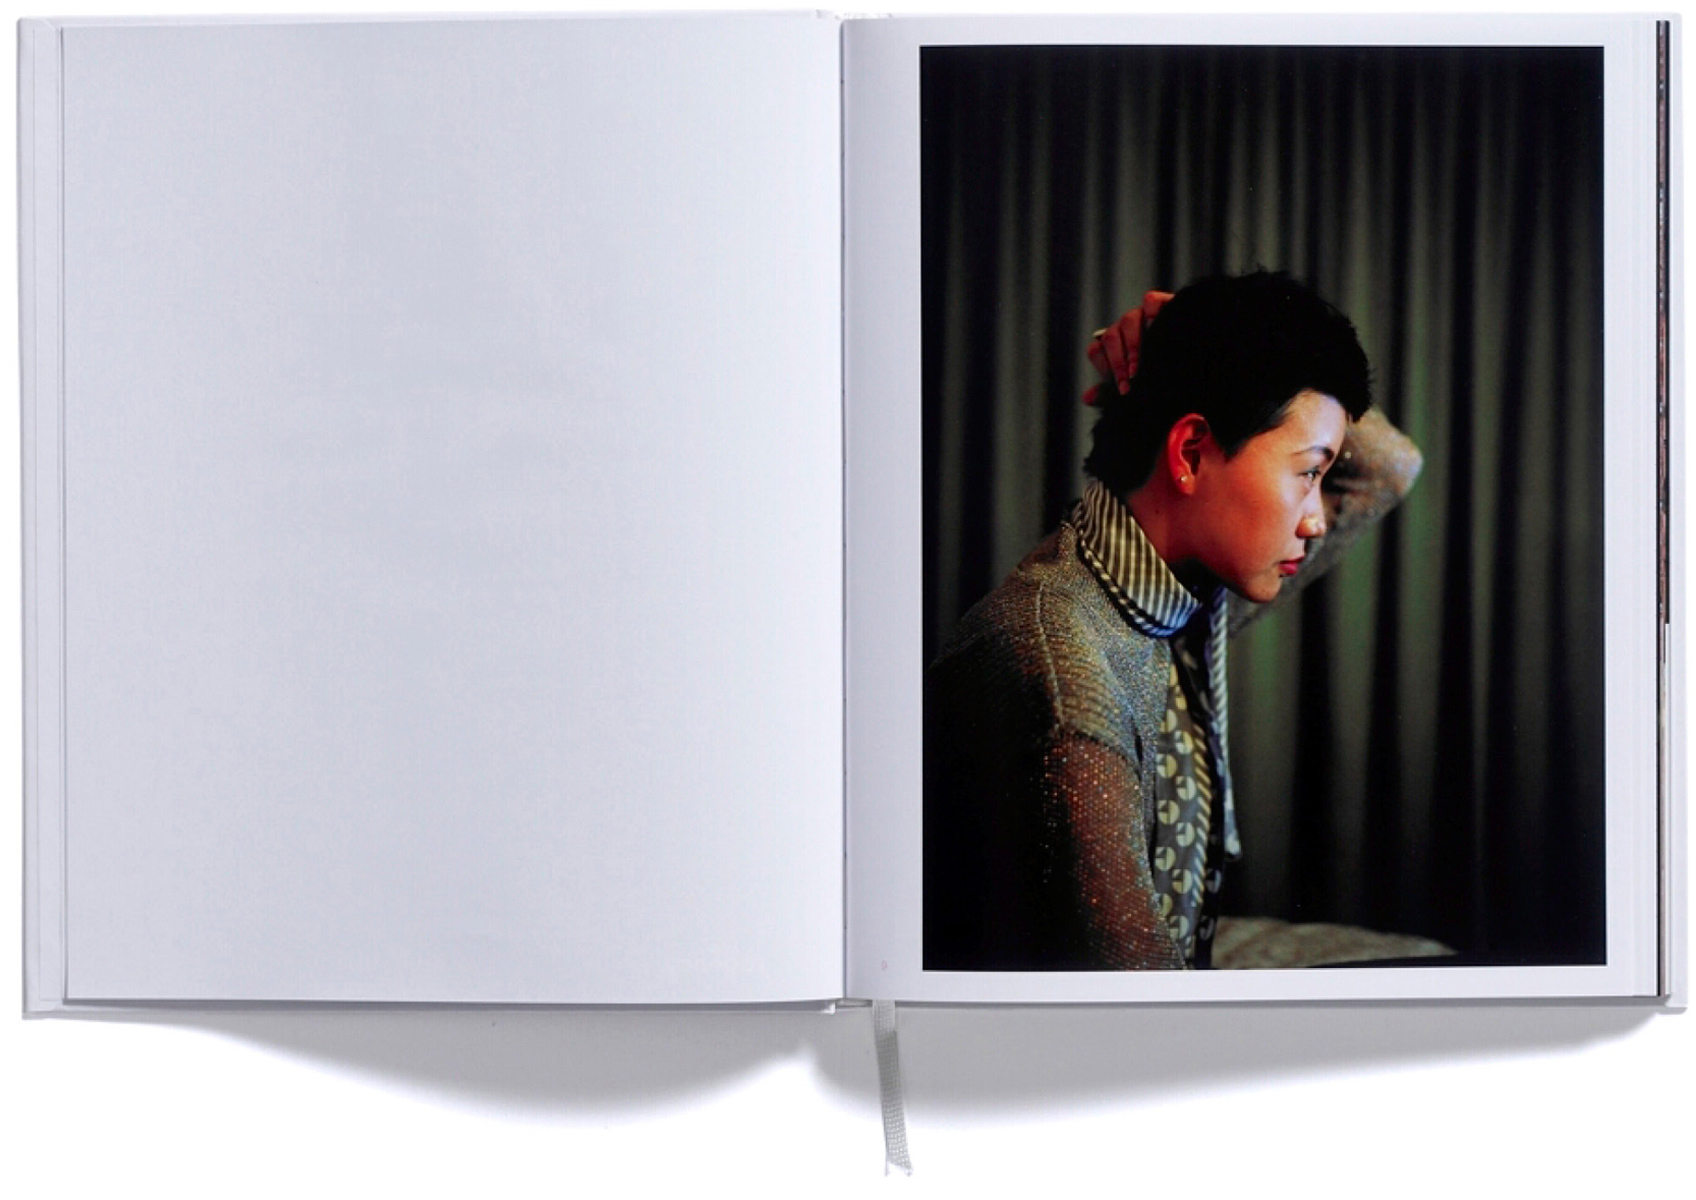 Browns Editions, Paul Graham, Howard Smith Paper Lecture Series